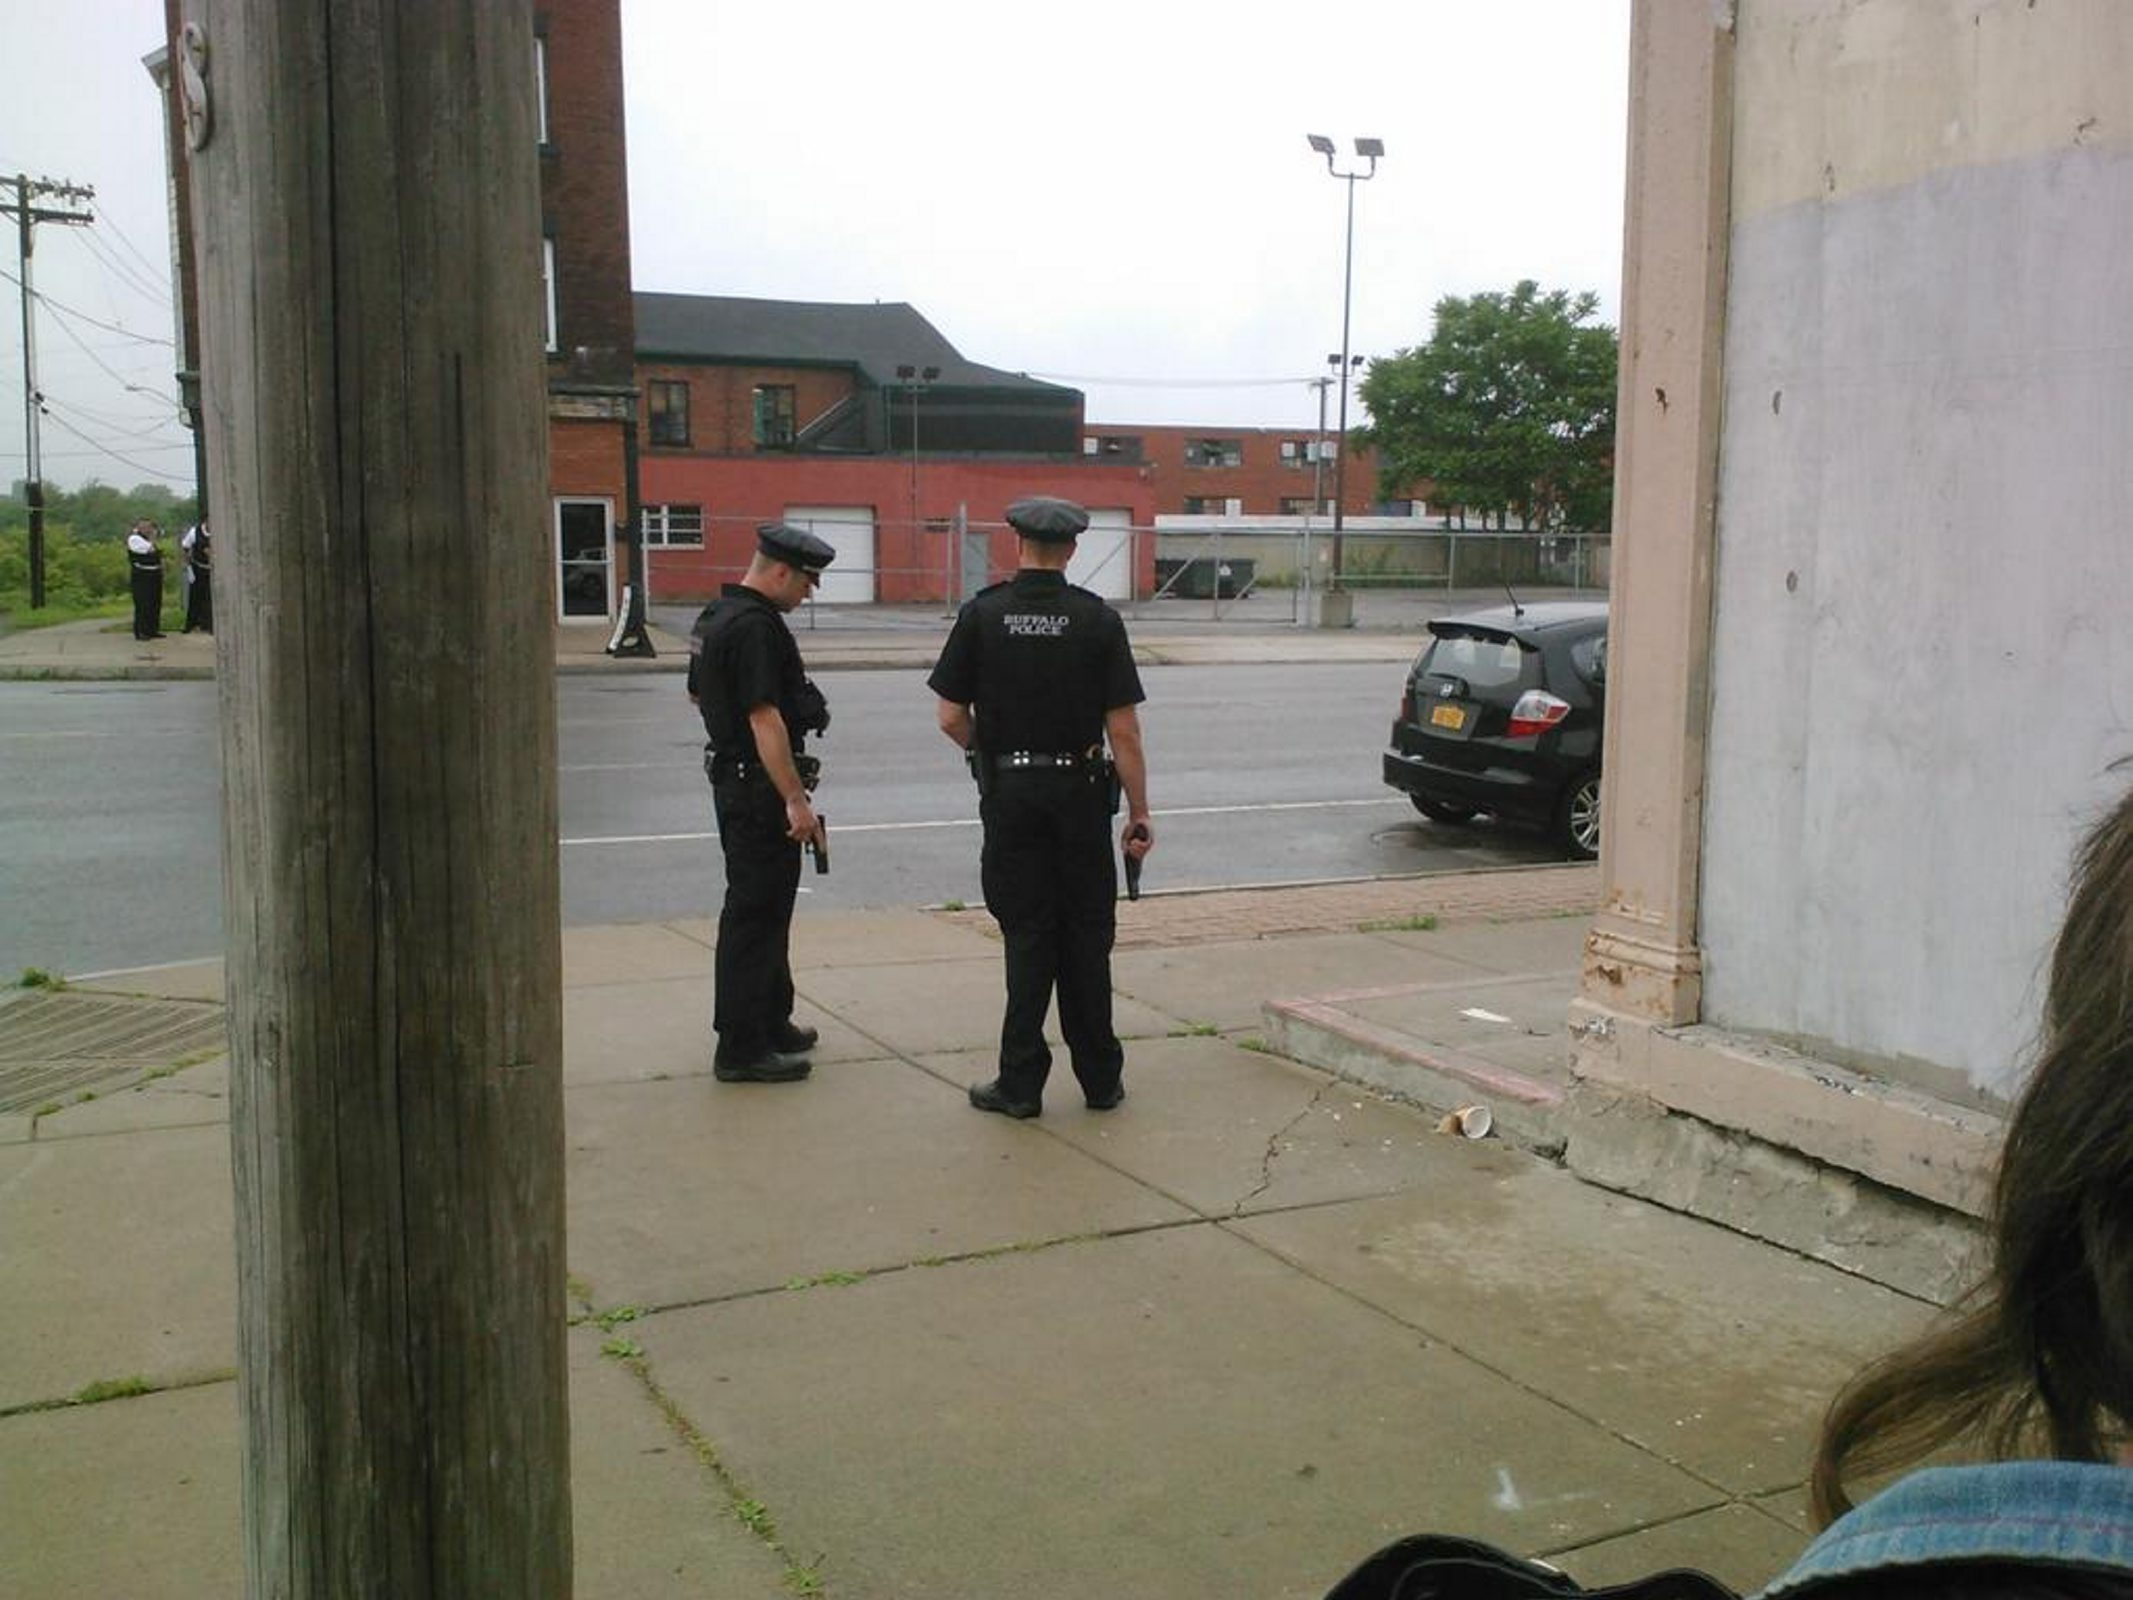 Two Buffalo police officers, with guns drawn, stand guard at an intersection.